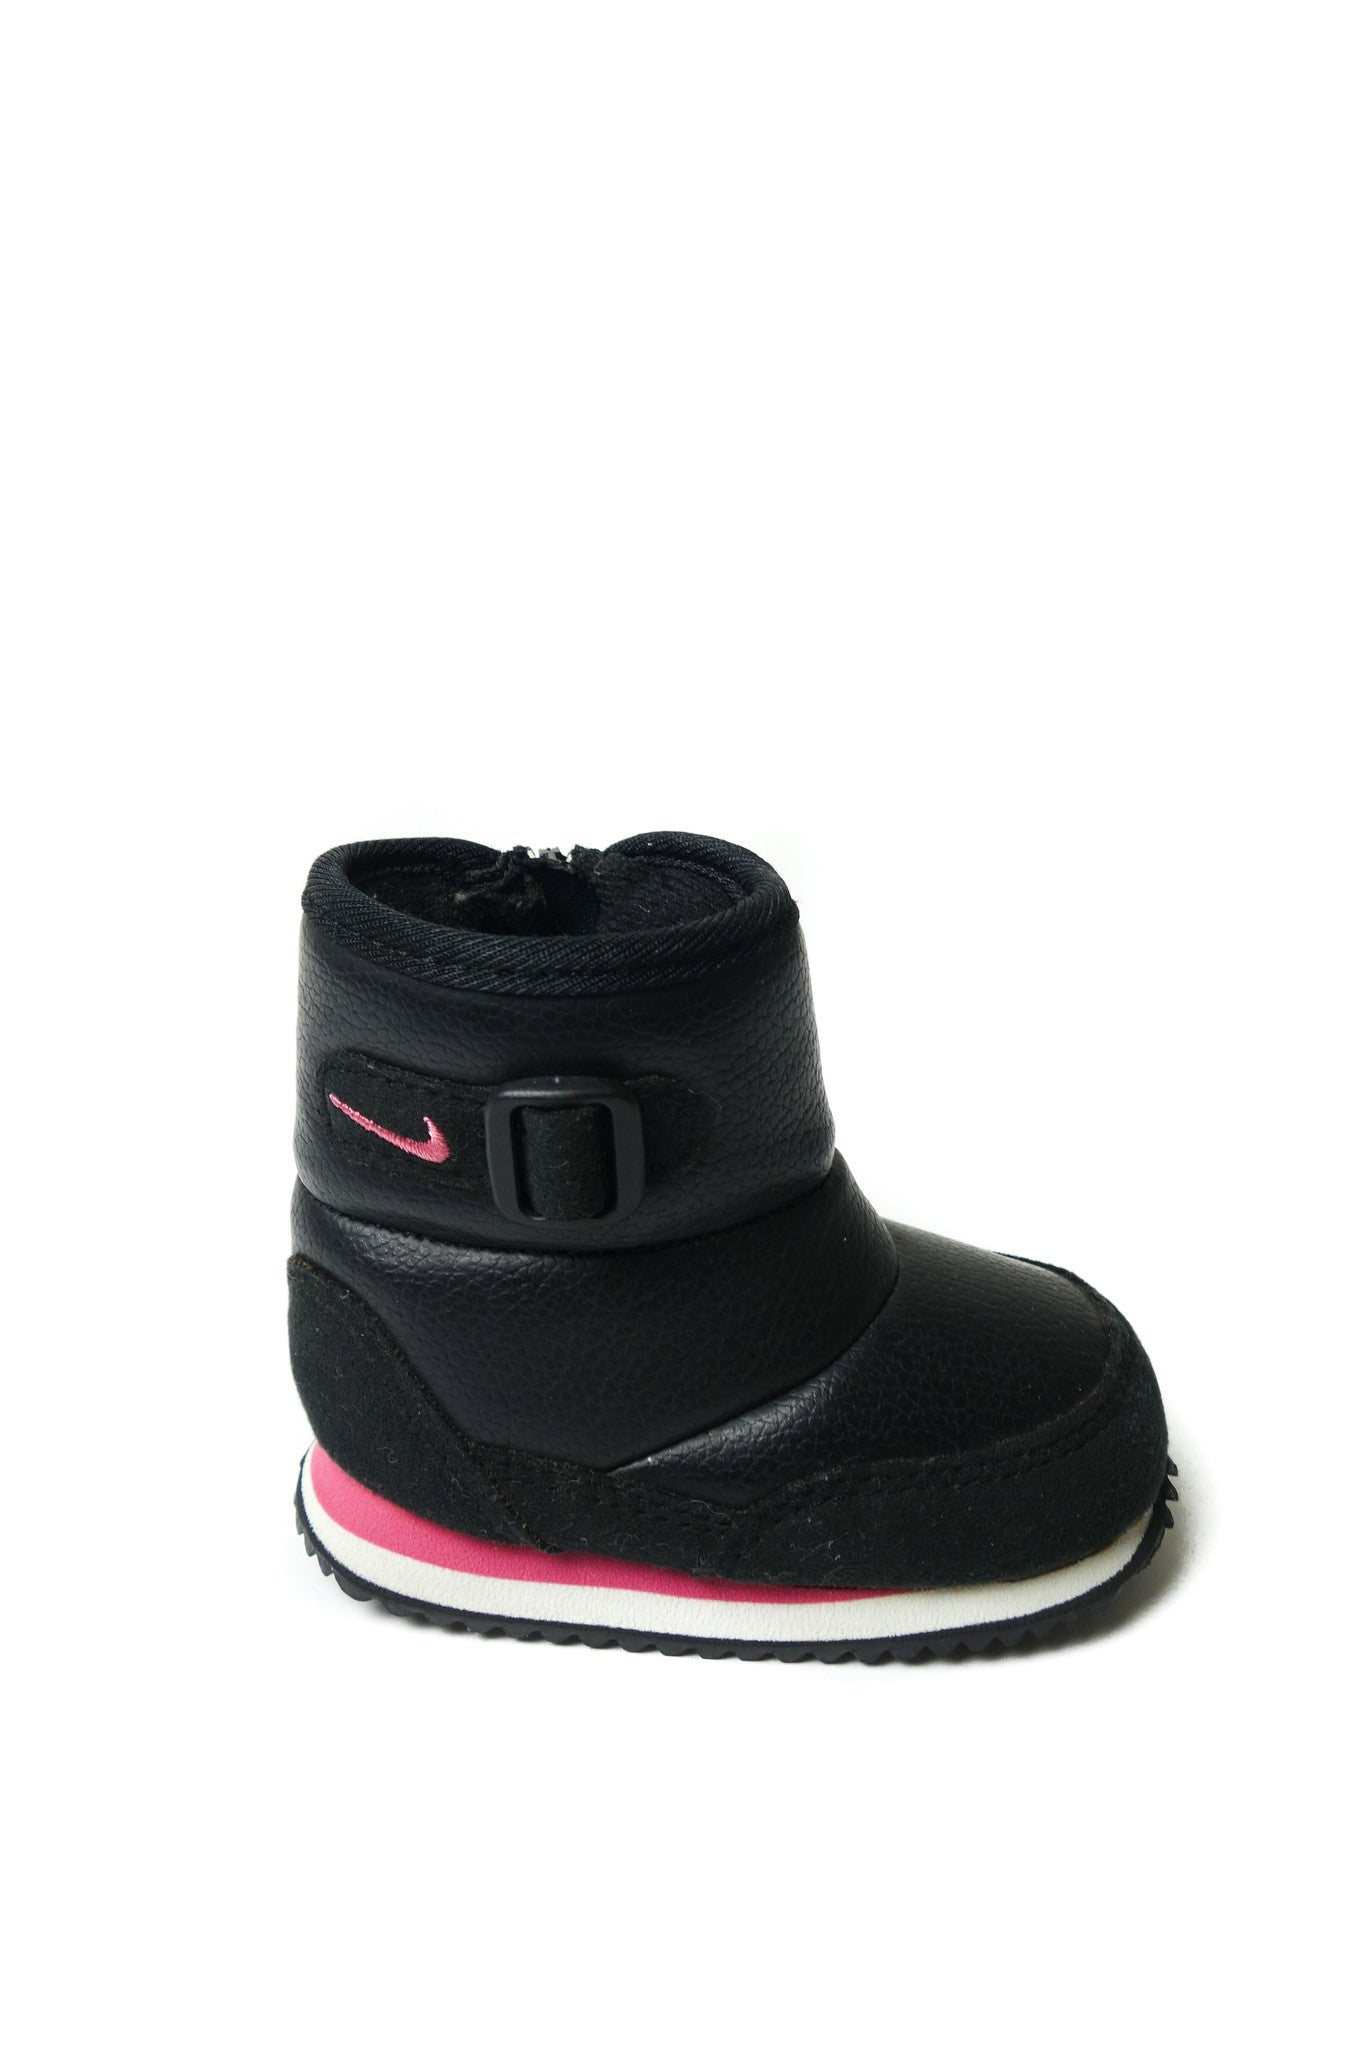 10001650 Nike Baby~Boots 6-12M (US 3) at Retykle